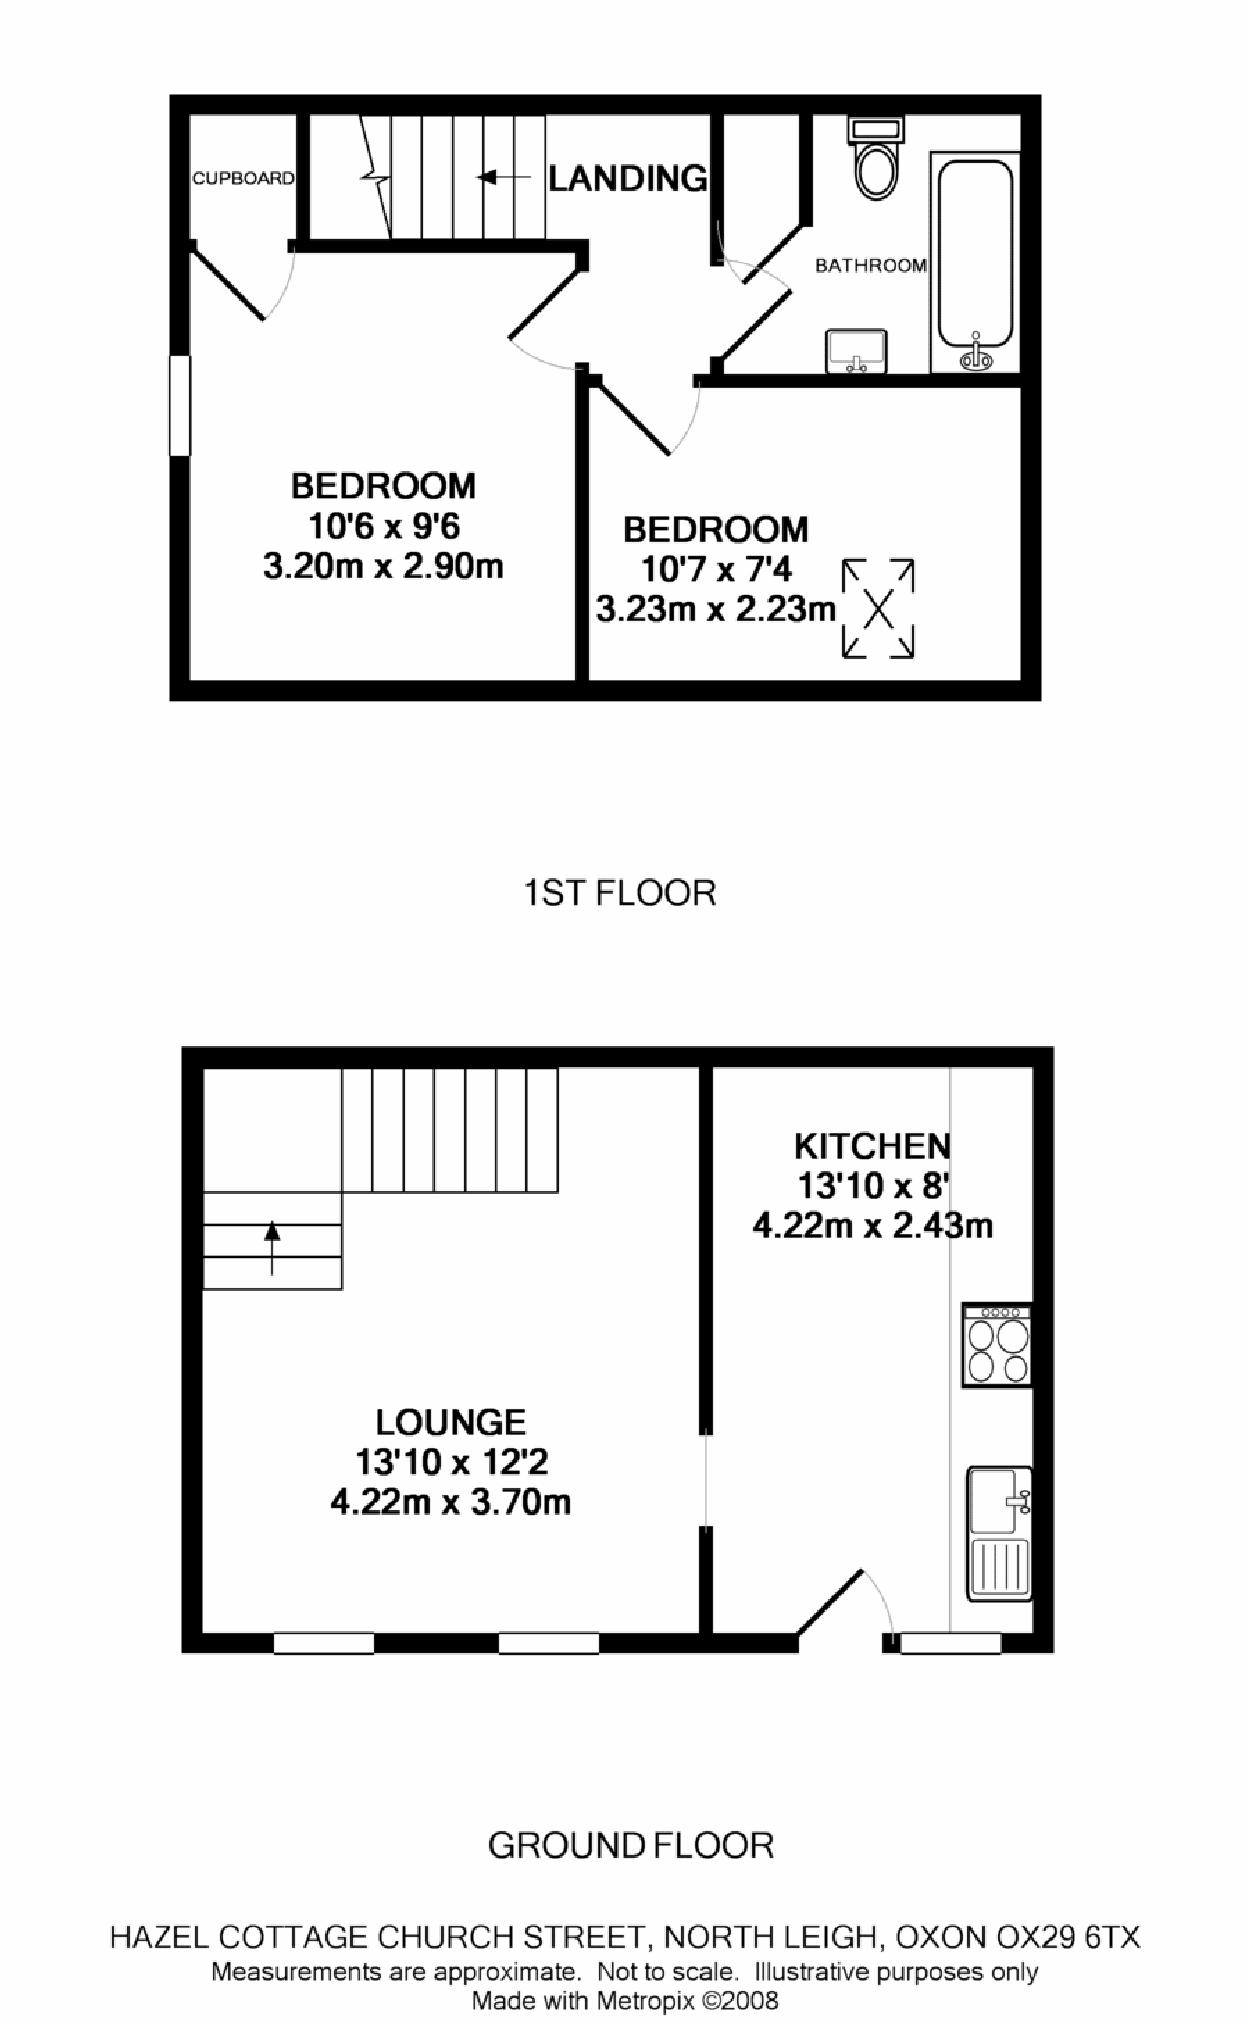 Church road north leigh ox29 ref 15572 witney for 2 br house plans